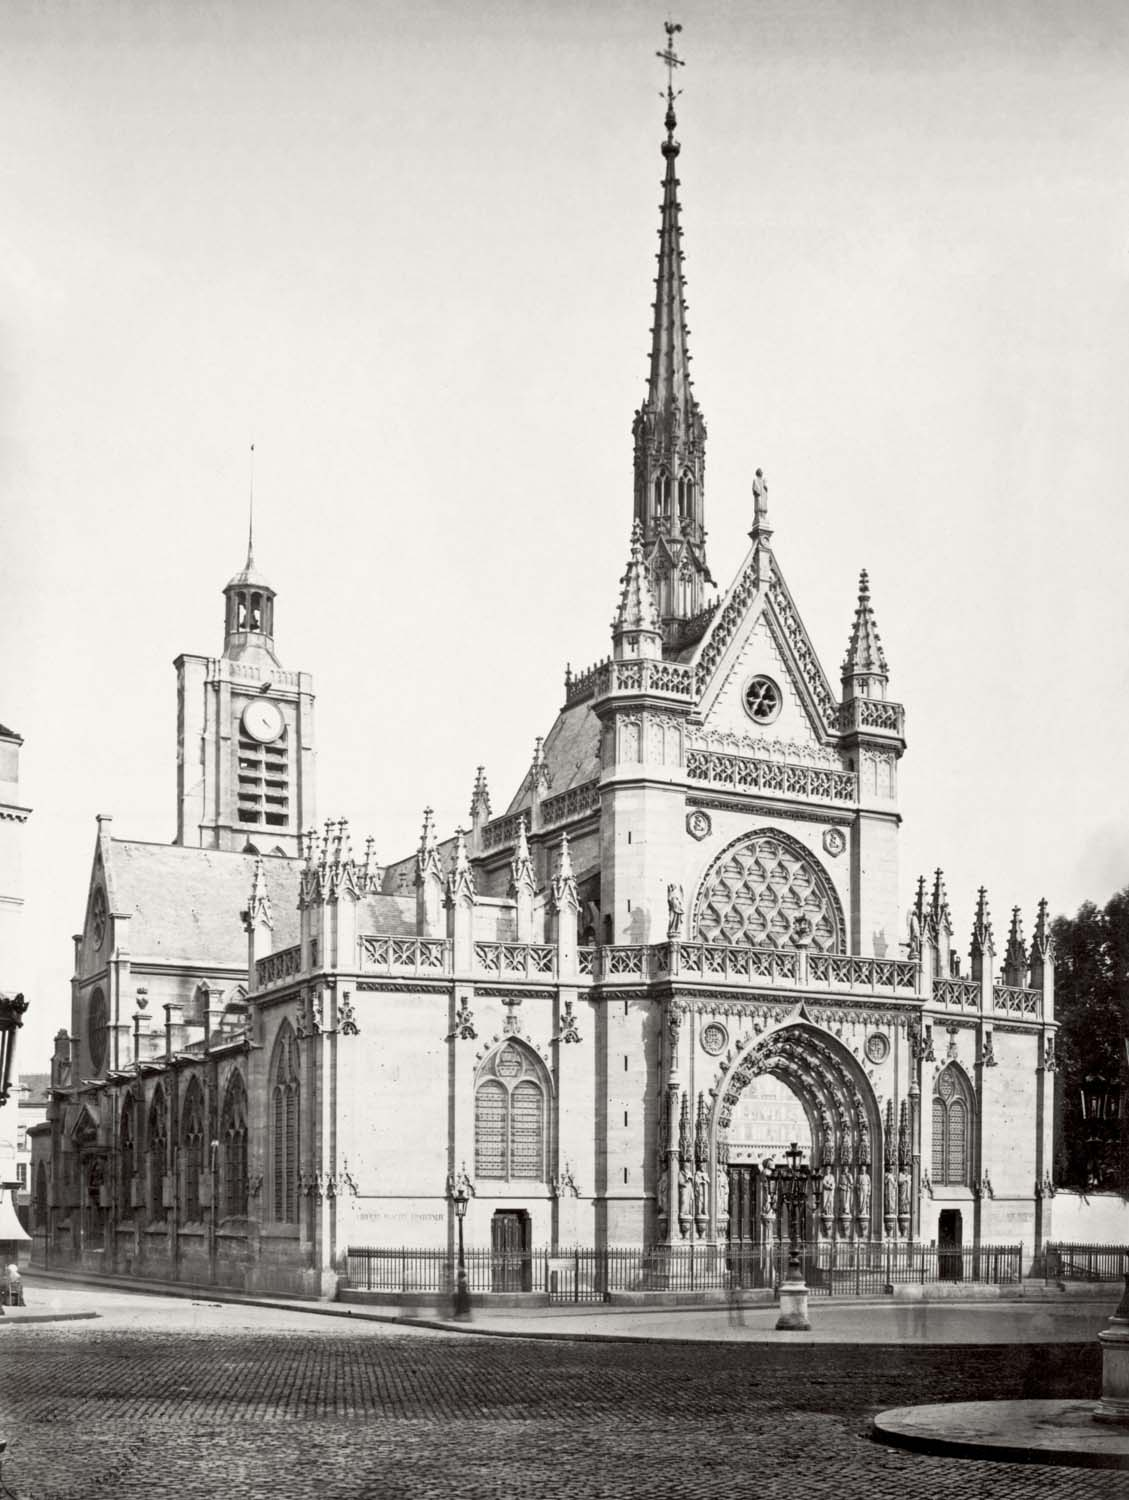 A mid-nineteenth-century photo of the Eglise Saint-Laurent taken by renowned French photographer Charles Marville.